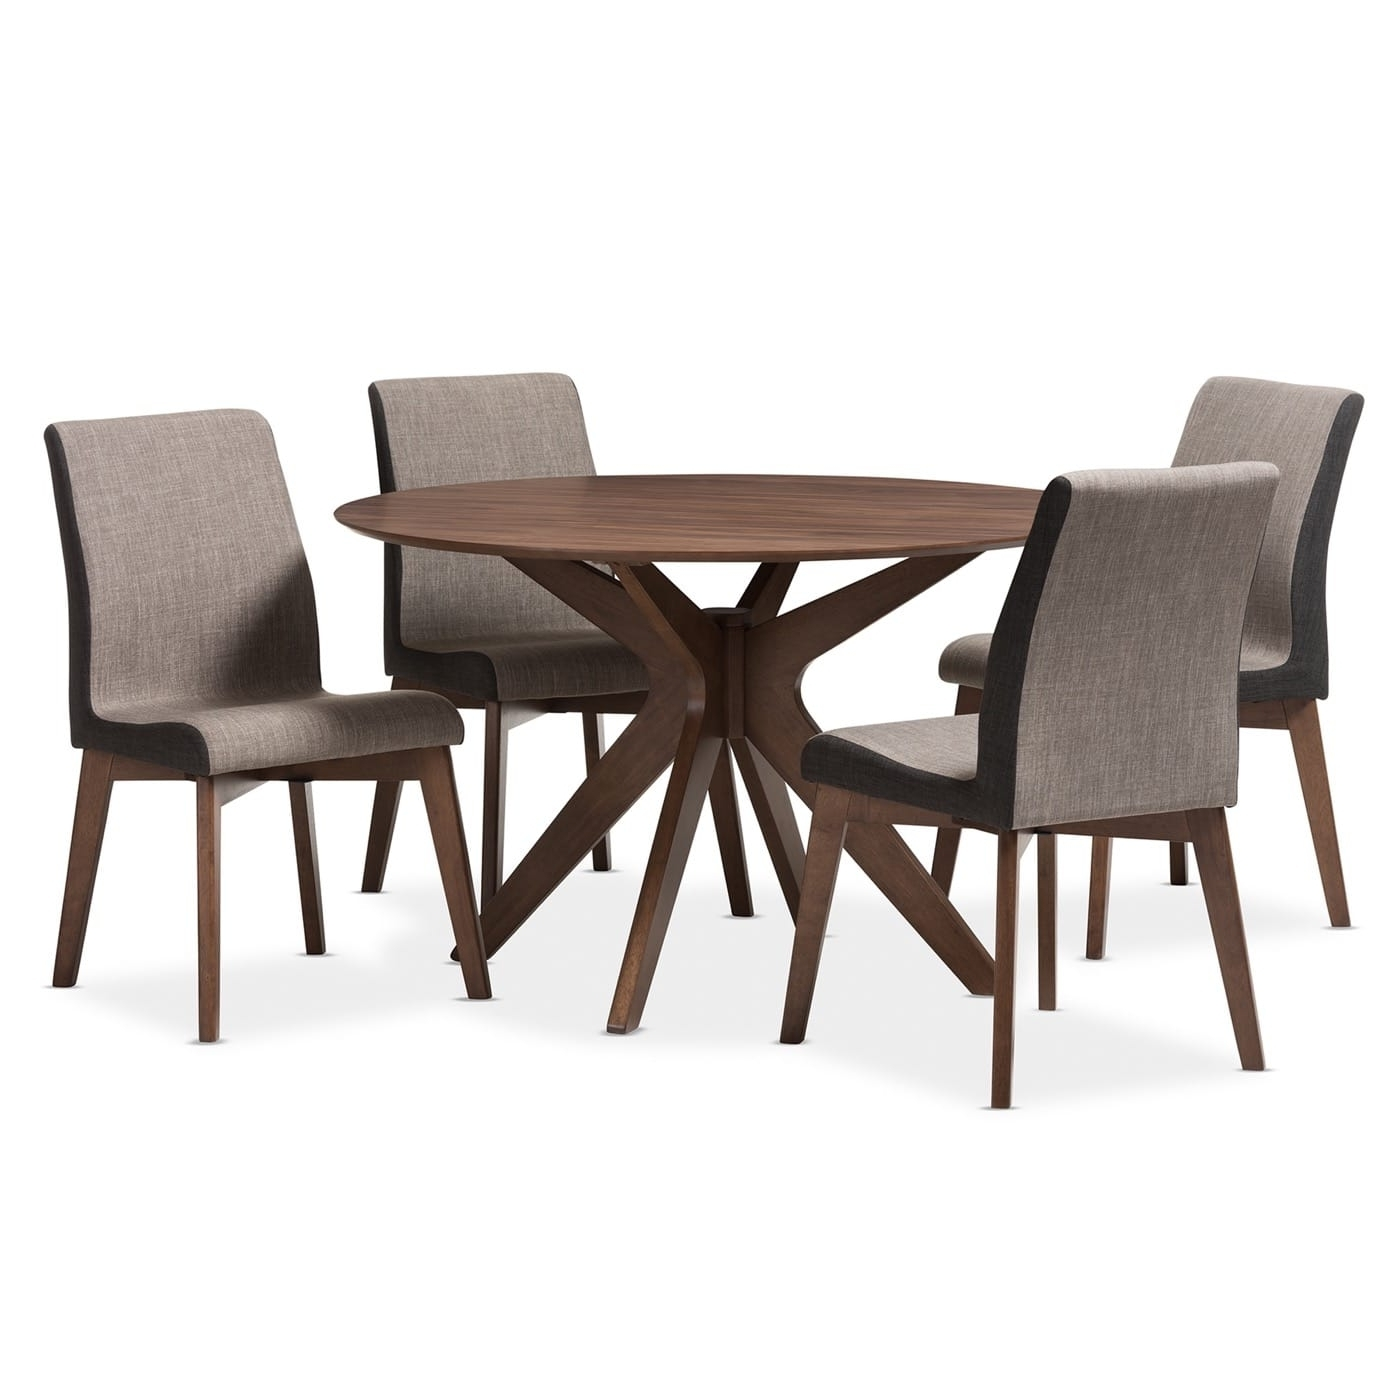 Grady 5 Piece Round Dining Sets Regarding Most Current Round 5 Piece Dining Set – Round Ideas (View 7 of 25)